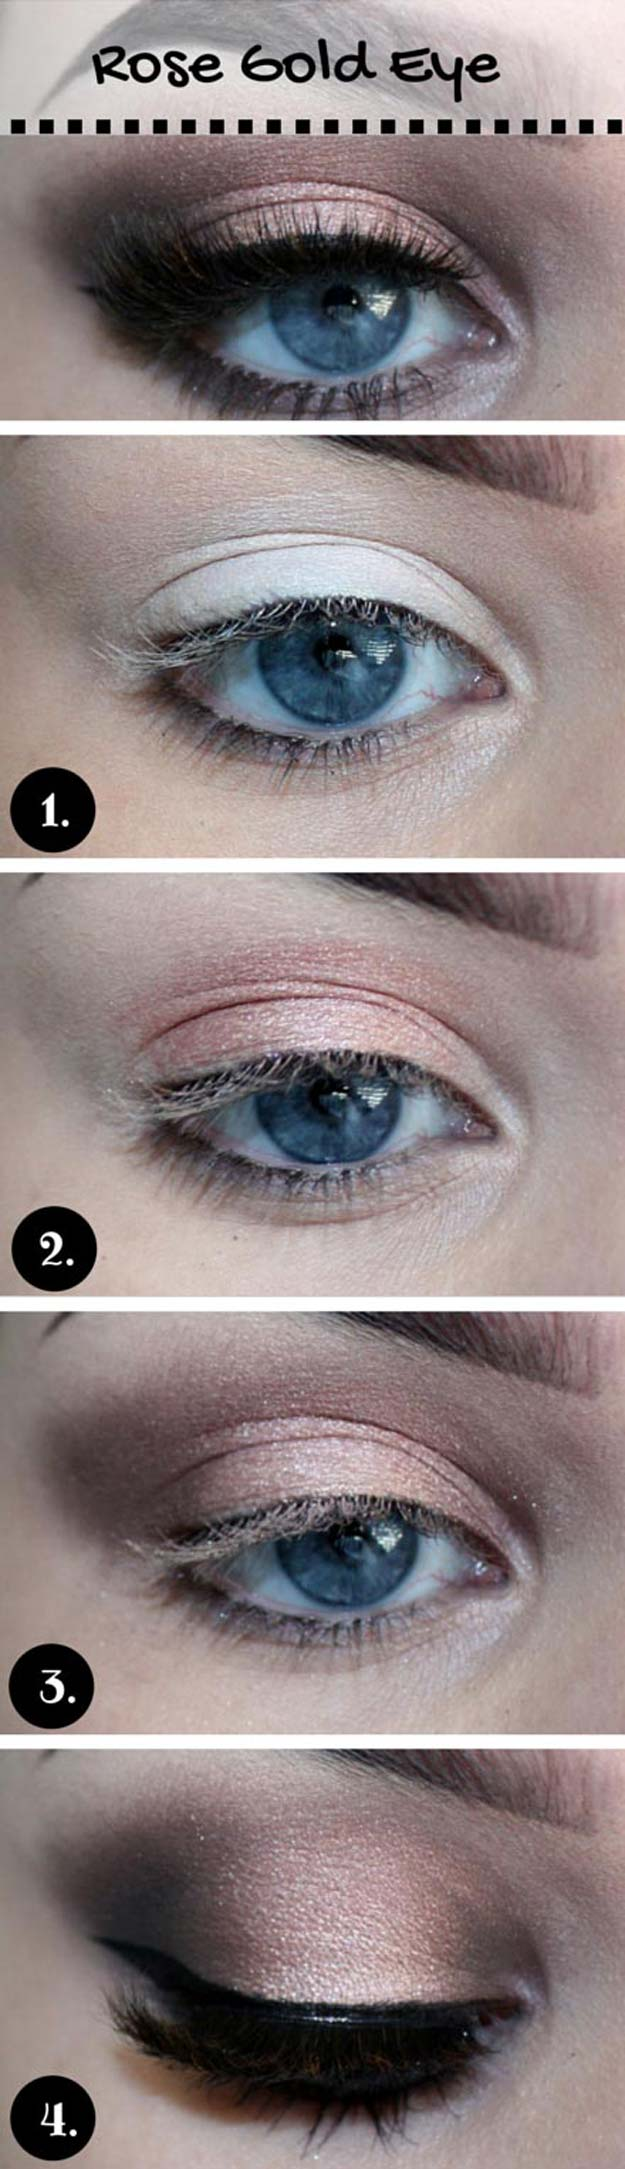 Best Eyeshadow Tutorials - Rosegold Makeup Look - Easy Step by Step How To For Eye Shadow - Cool Makeup Tricks and Eye Makeup Tutorial With Instructions - Quick Ways to Do Smoky Eye, Natural Makeup, Looks for Day and Evening, Brown and Blue Eyes - Cool Ideas for Beginners and Teens http://diyprojectsforteens.com/best-eyeshadow-tutorials